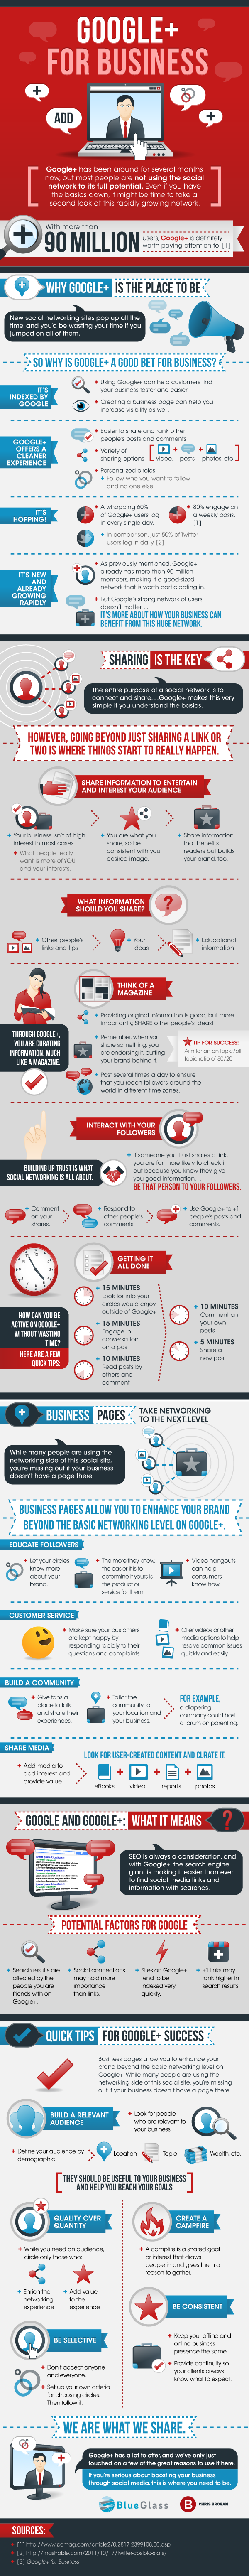 Interesting Google+ for Business #infographic